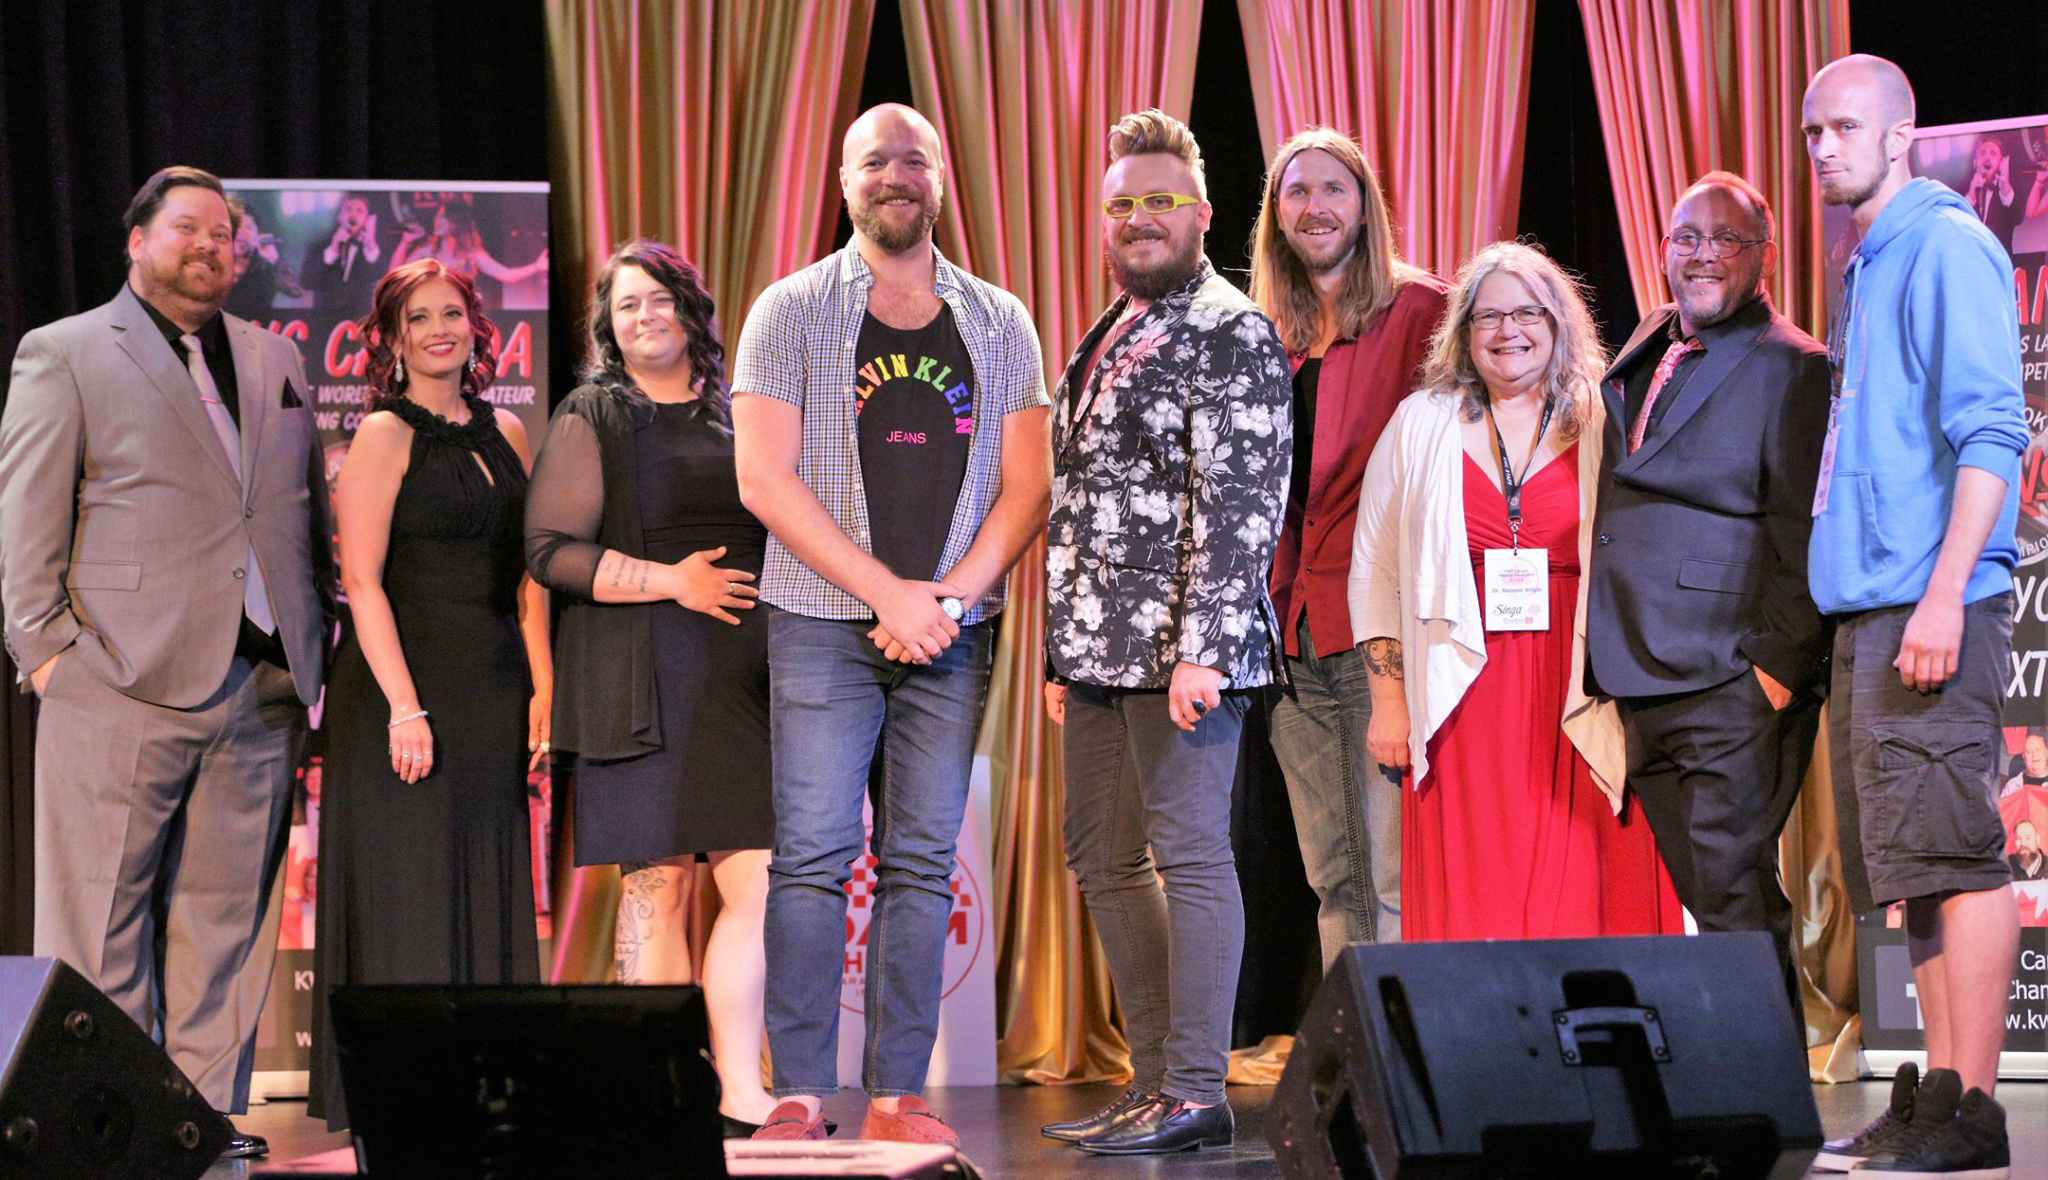 From left: Joey Oberhoffner, Christine Costa, Megan Ryan, Stylish Lumberjack, Jeff Edwards, Sean Britton, Suzanne Wright, Dustin Jodway, Rob Quinn